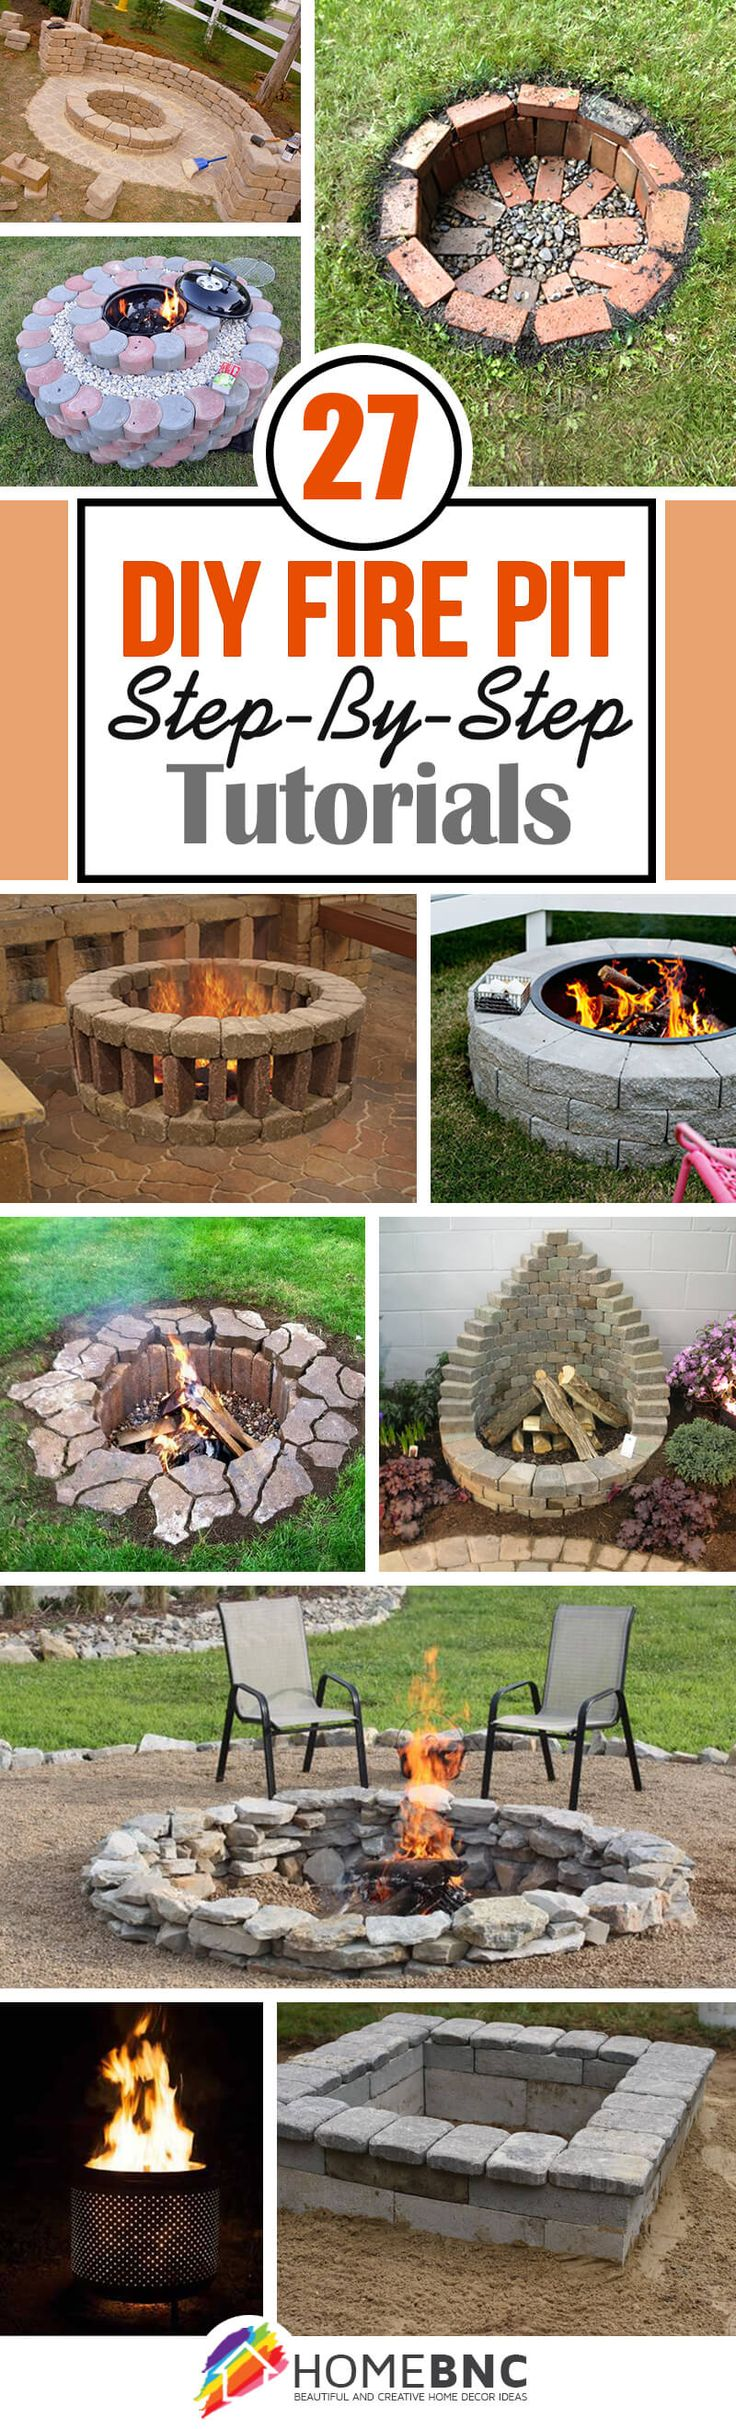 DIY Firepit ProjectsCall today or stop by for a tour of our facility! Indoor Units Available! Ideal for Outdoor gear, Furniture, Antiques, Collectibles, etc. 505-275-2825